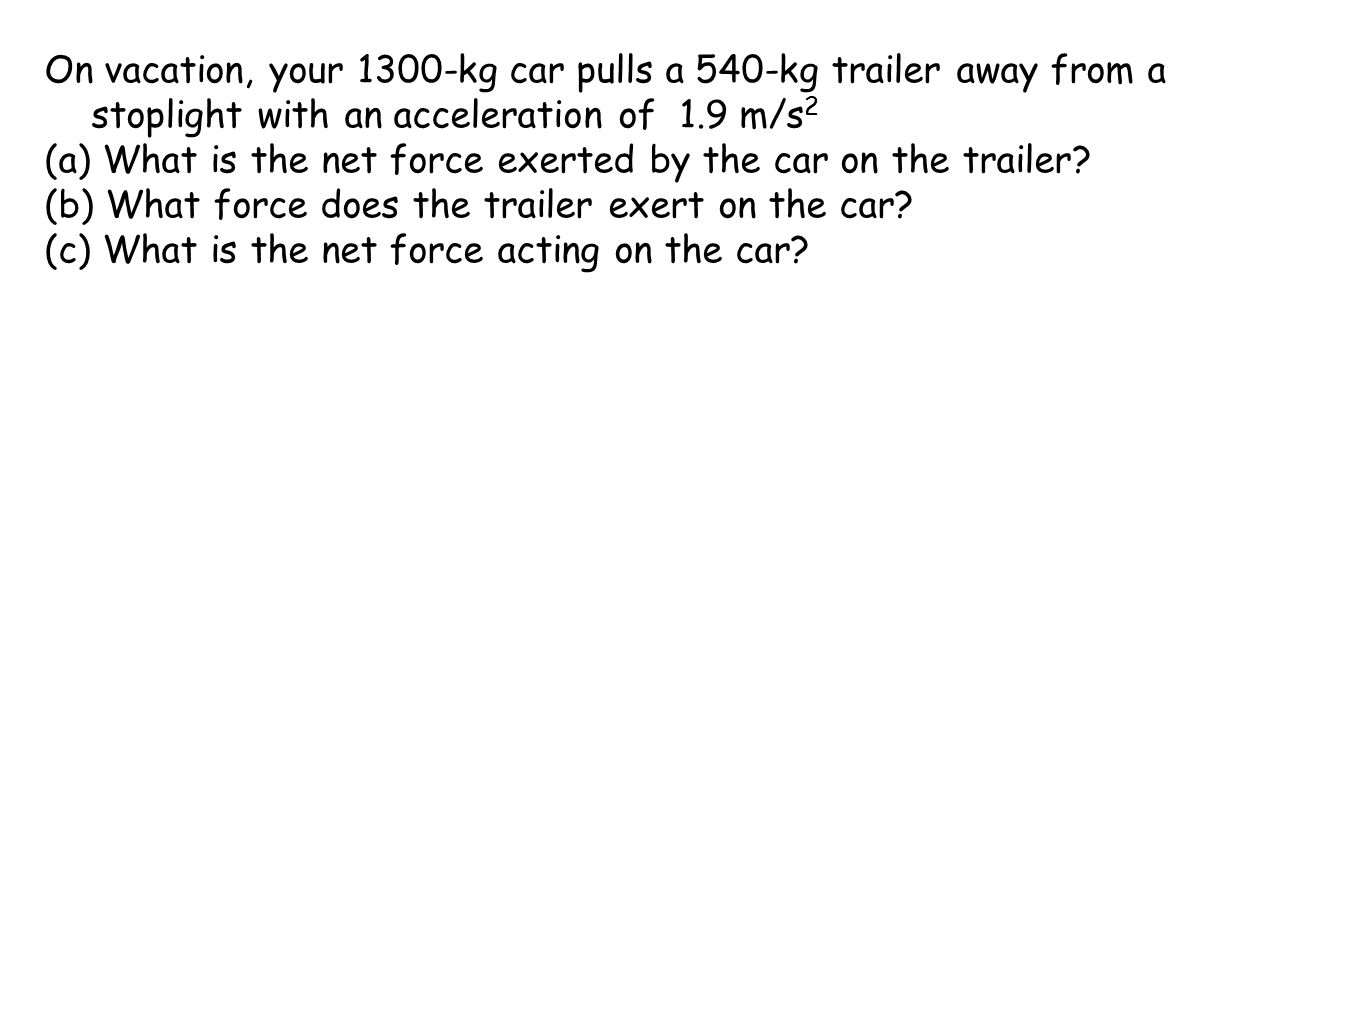 On vacation, your 1300-kg car pulls a 540-kg trailer away from a stoplight with an acceleration of 1.9 m/s2